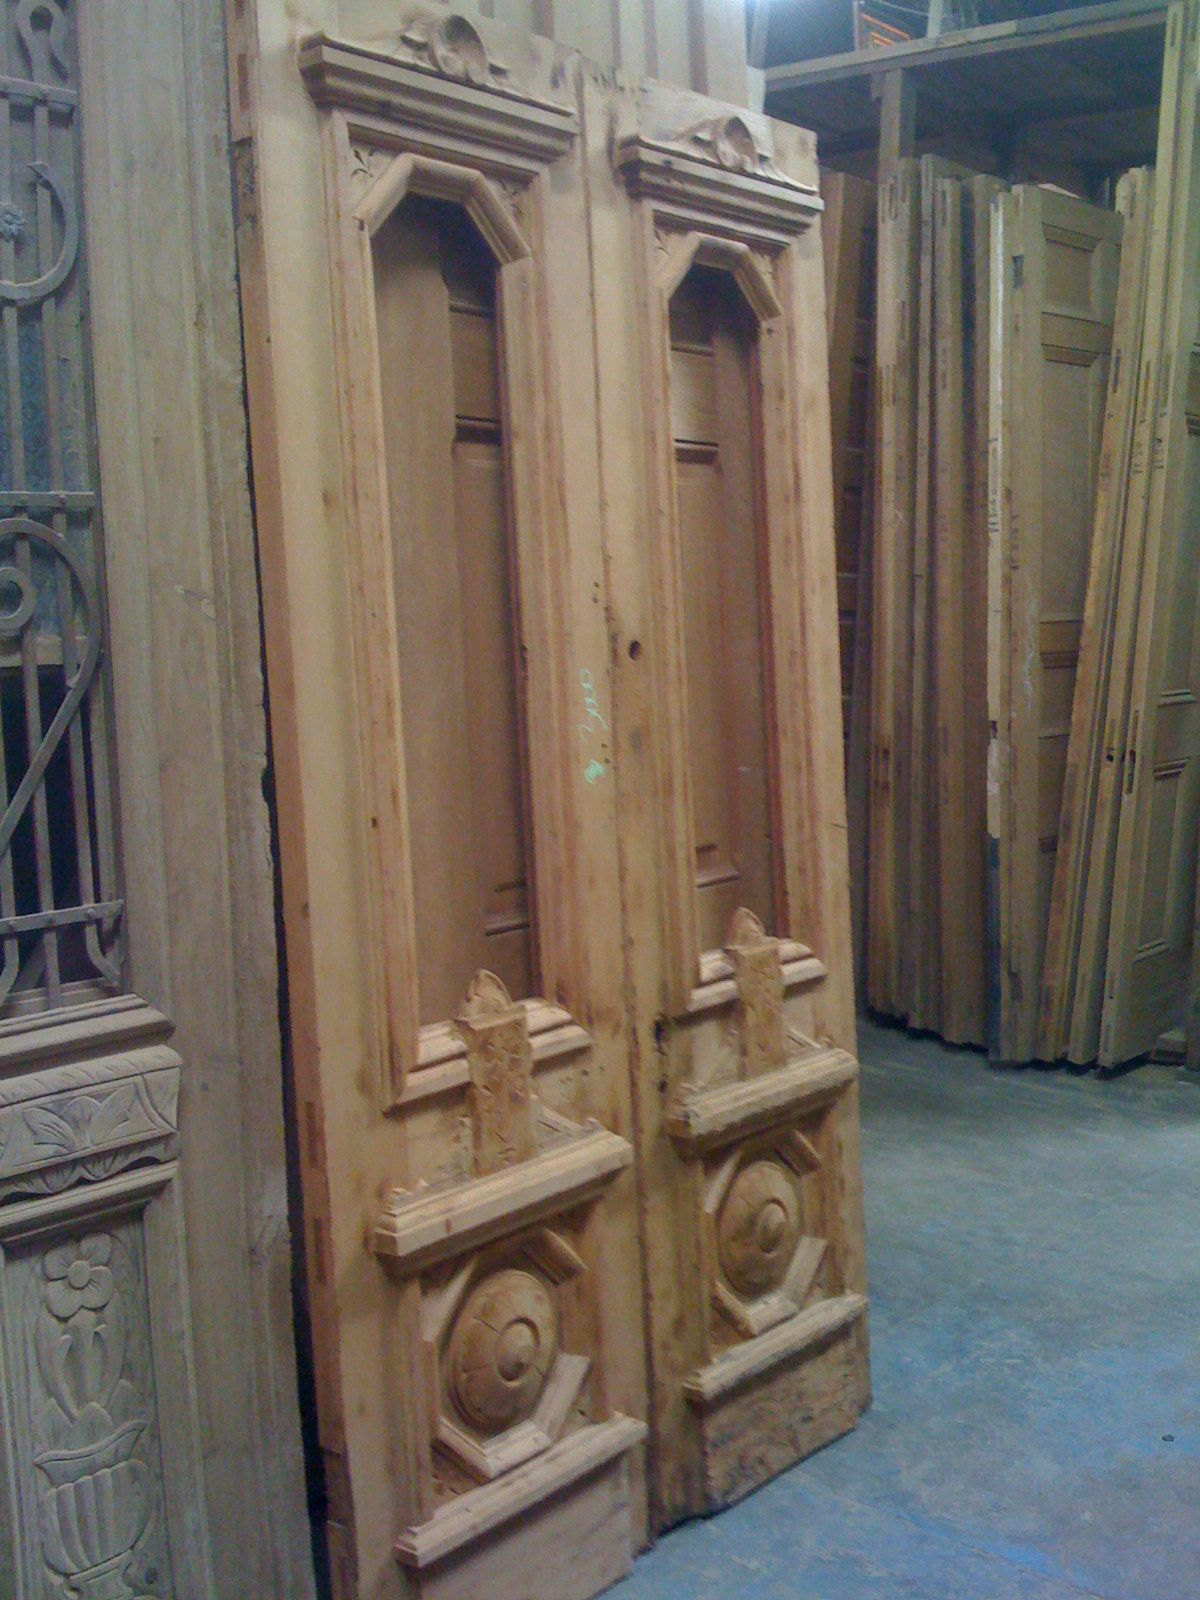 Antique Doors And Furniture | The Bank Architectural Antiques | Metro New  Orleans - Antique Doors And Furniture The Bank Architectural Antiques